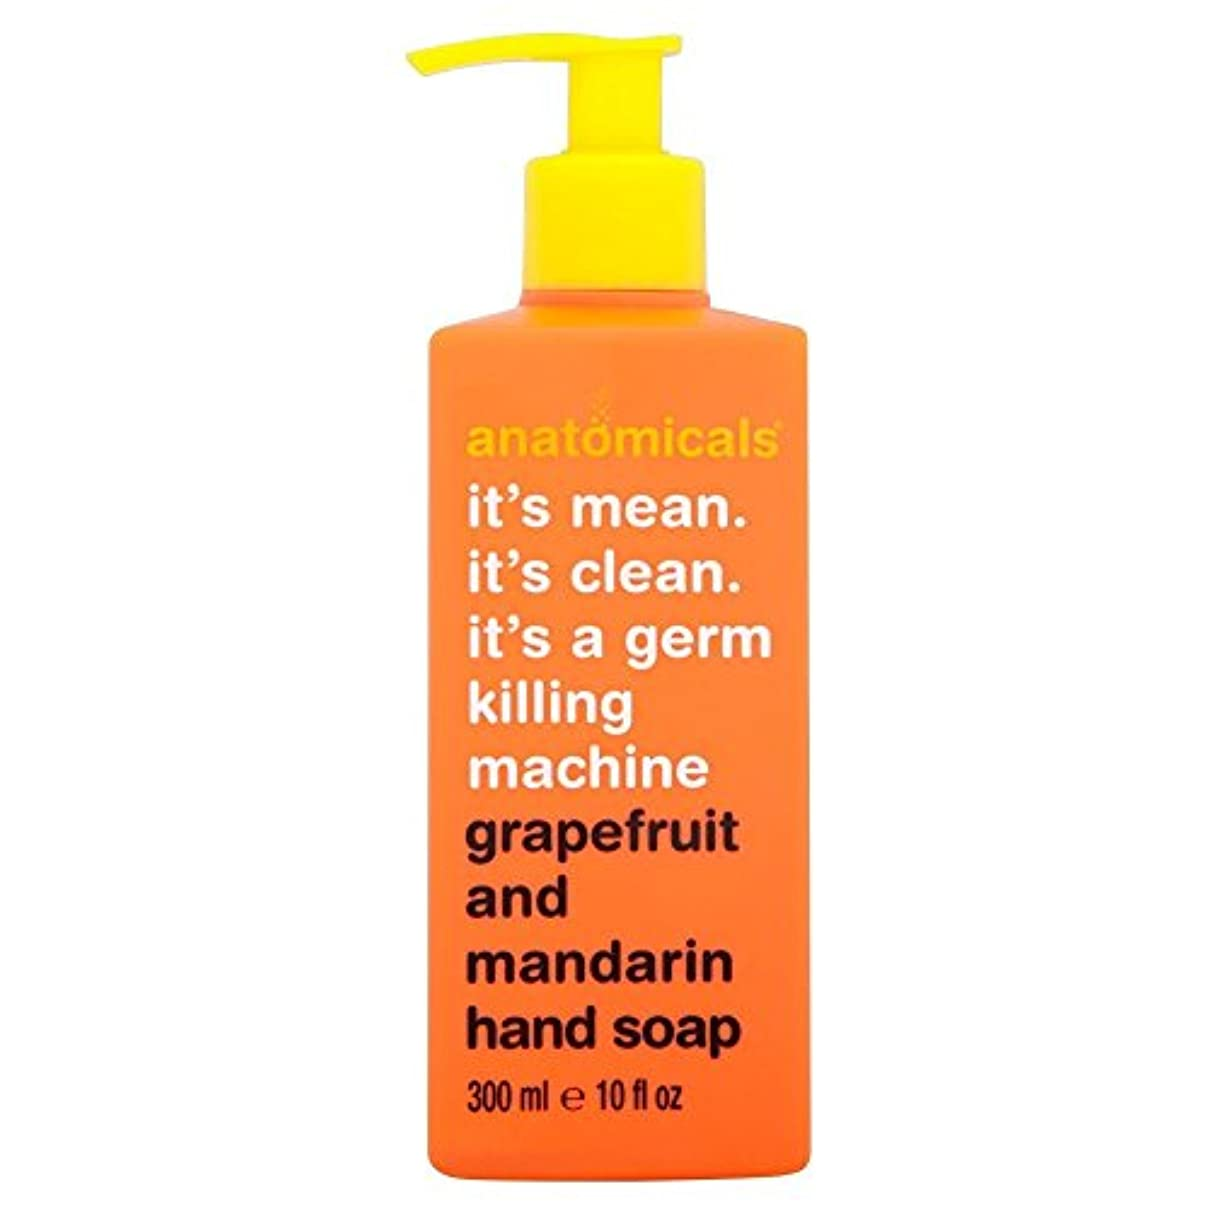 完了倒産コンテンツAnatomicals It's Mean It's Clean It's a Germ Killing Machine Grapefruit & Mandarin Hand Soap (300ml) それはそれは、生殖殺人...